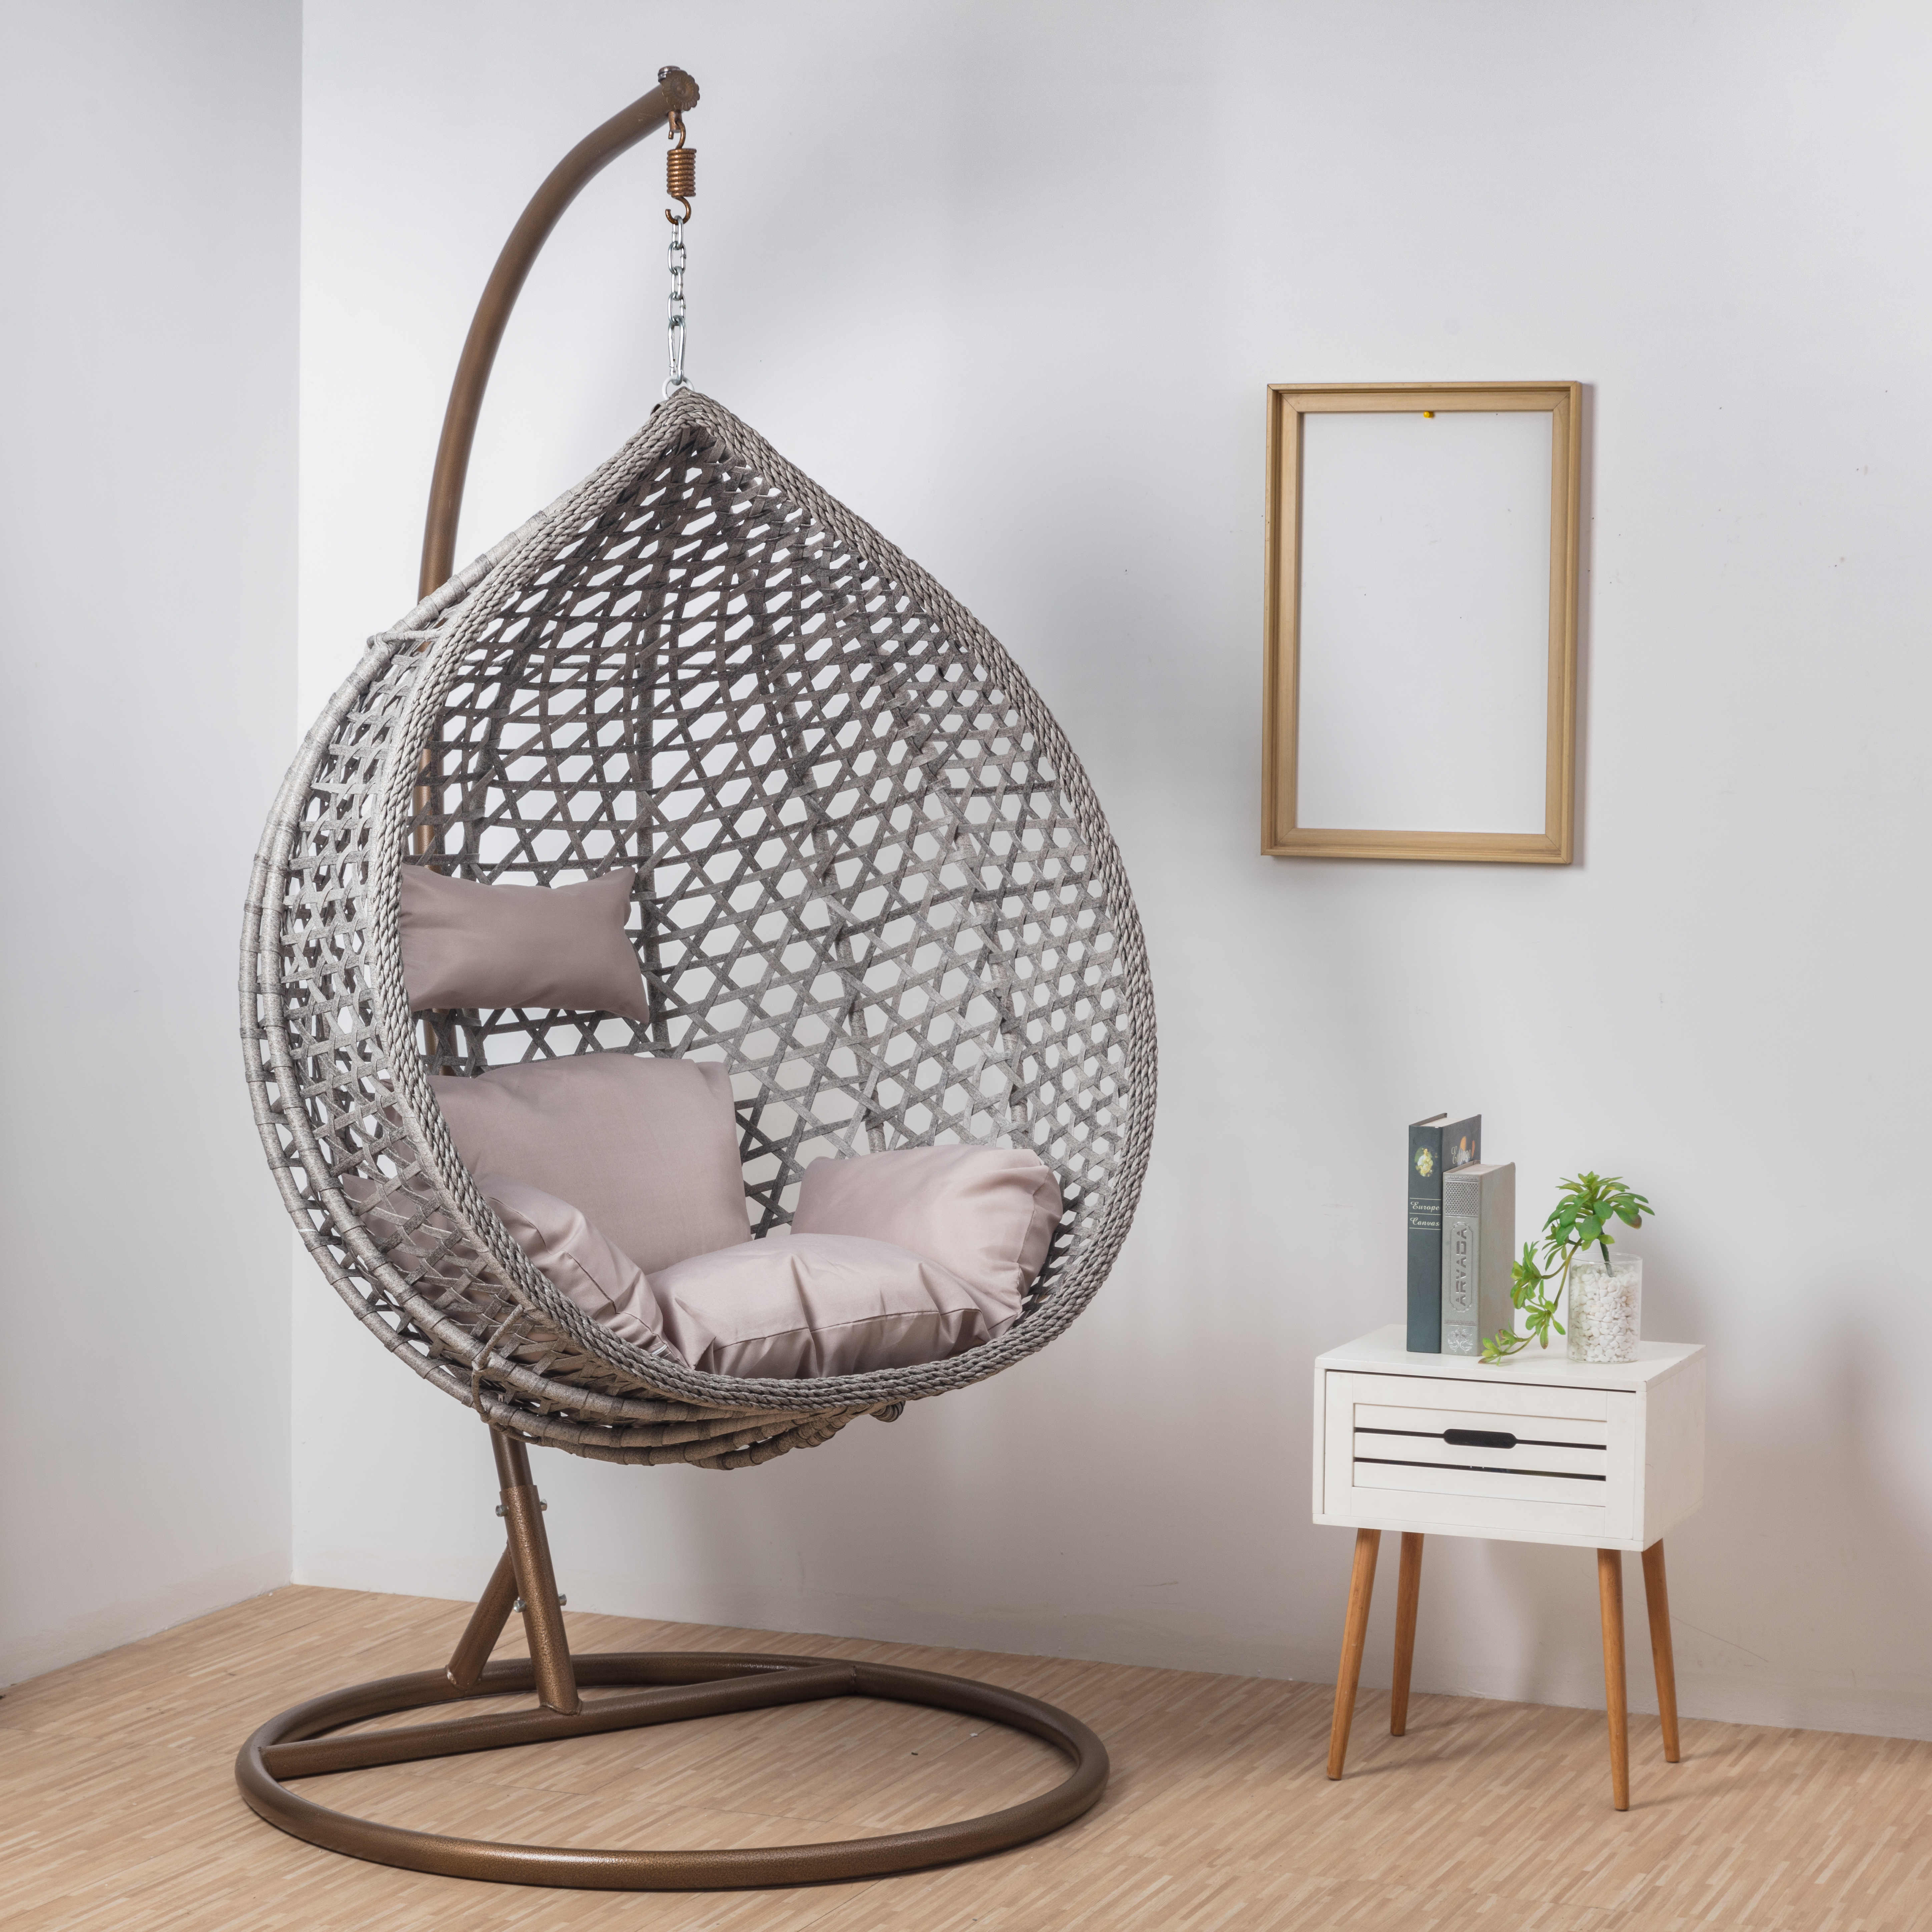 Leisure Park Patio Outdoor Garden Living Room Indoor Indian Adult Jhoola Swing Rattan Wicker Hanging Egg Chair For The Dacha Buy Leisure Park Patio Outdoor Garden Rattan Chair Outdoor Garden Living Room